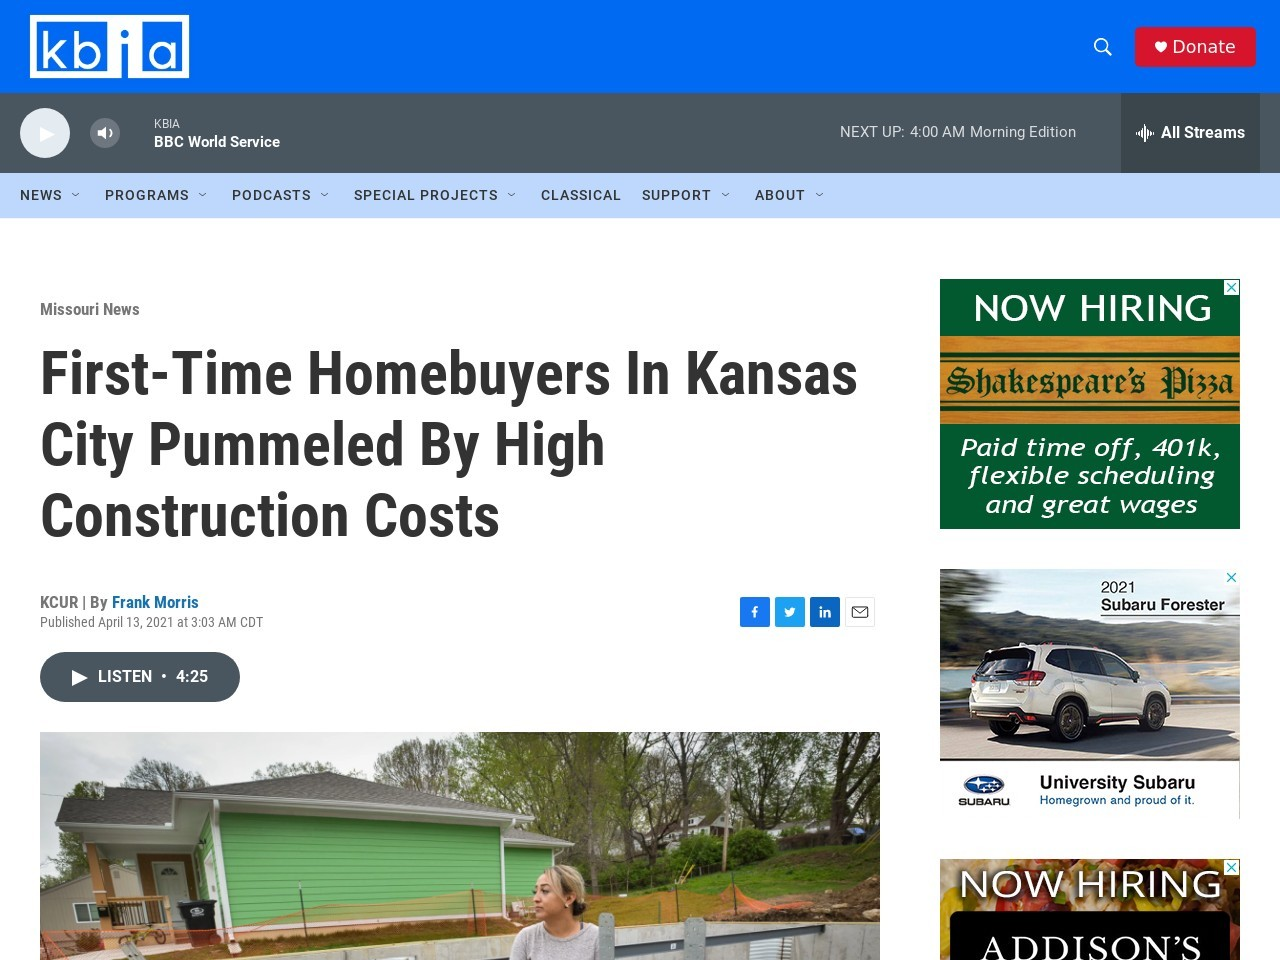 First-Time Homebuyers In Kansas City Pummeled By High Construction Costs – KBIA